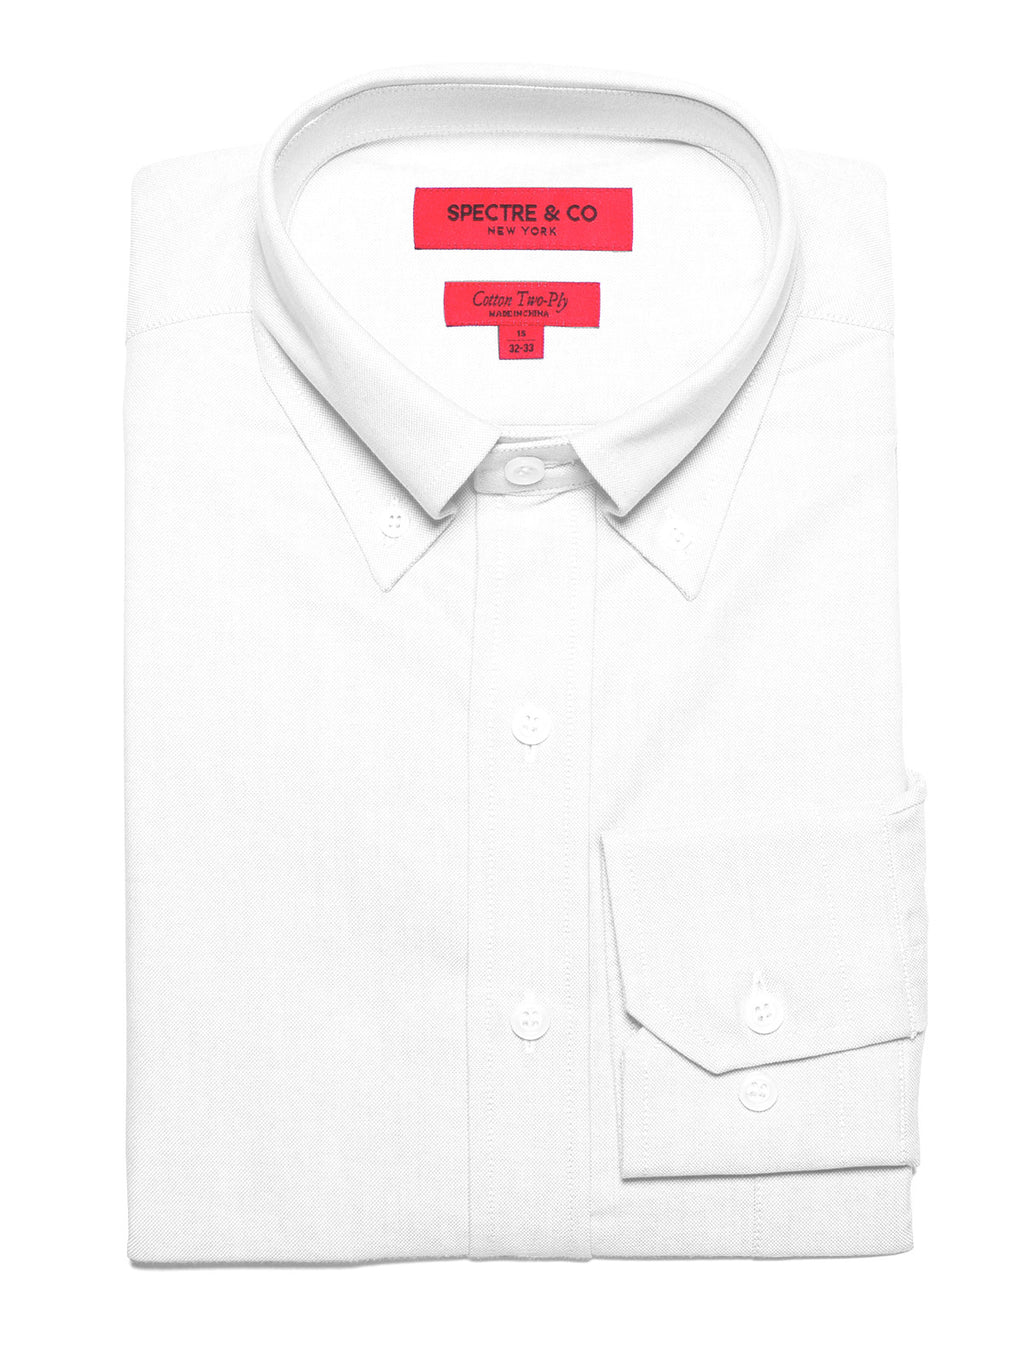 Washed White Oxford Button-Down Dress Shirt